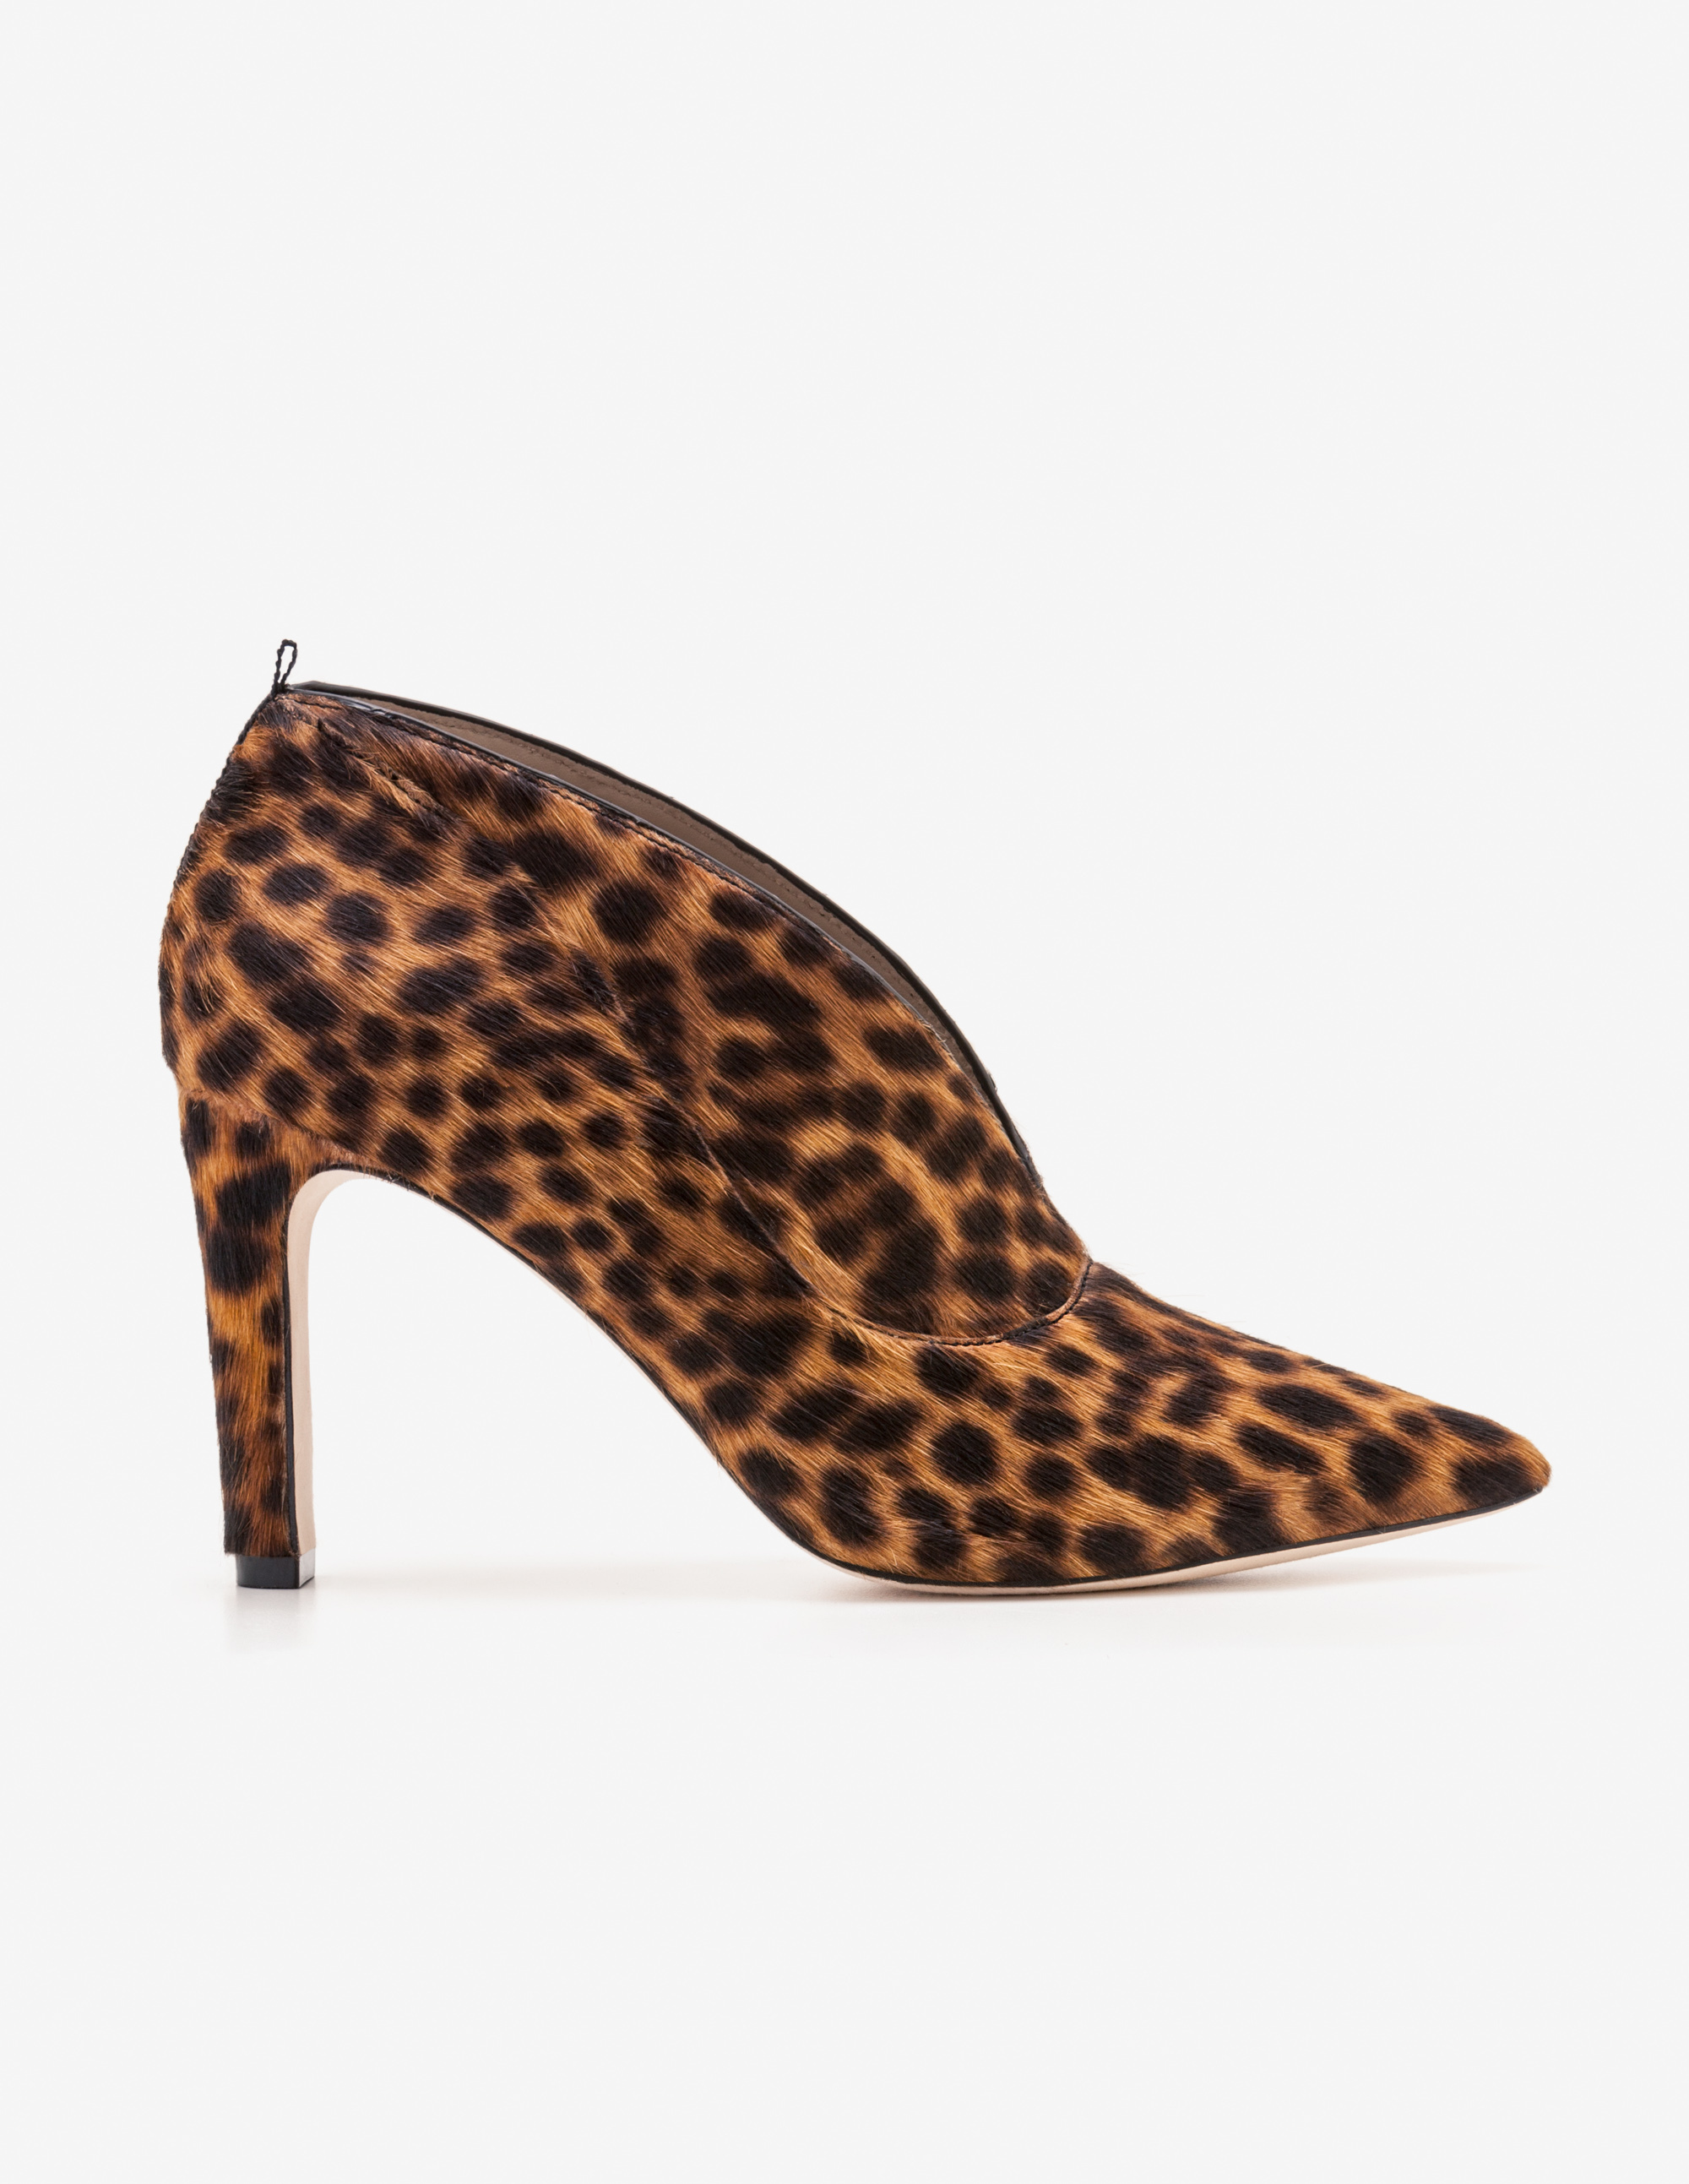 Boden Roseberry Heeled Ankle Boots Leopard Print